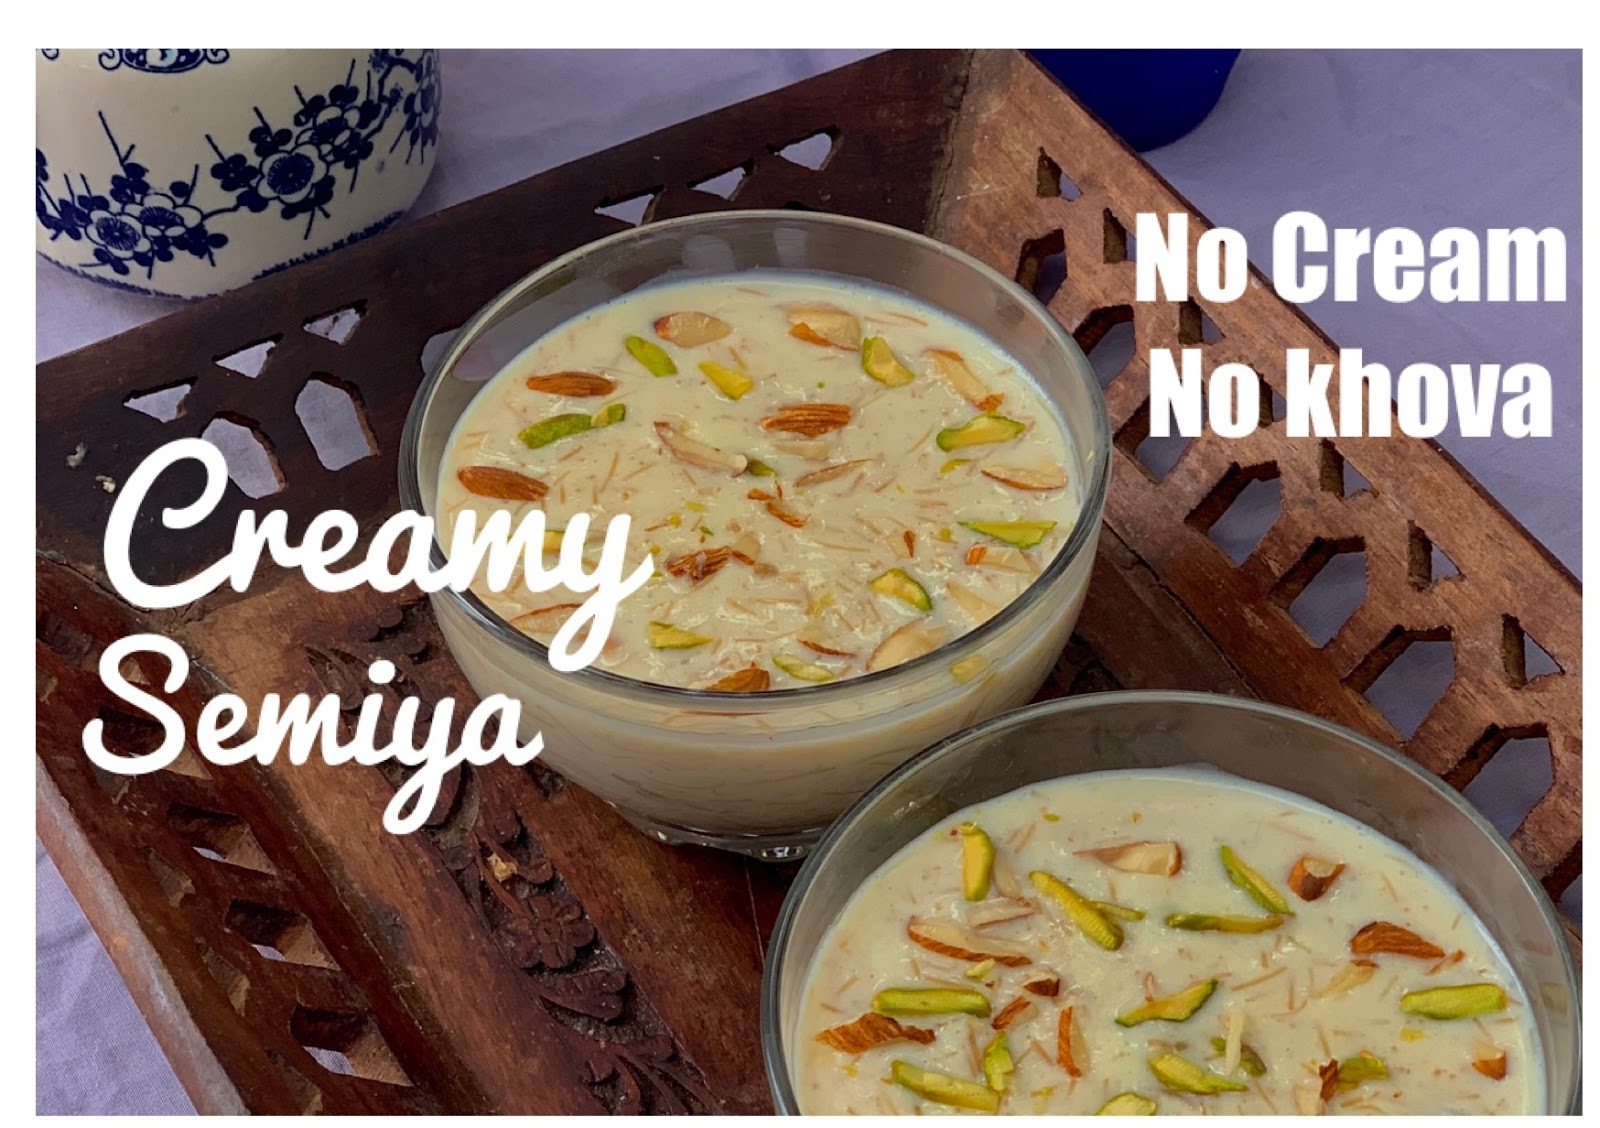 Creamy Custard Semiya No Cream No Khova